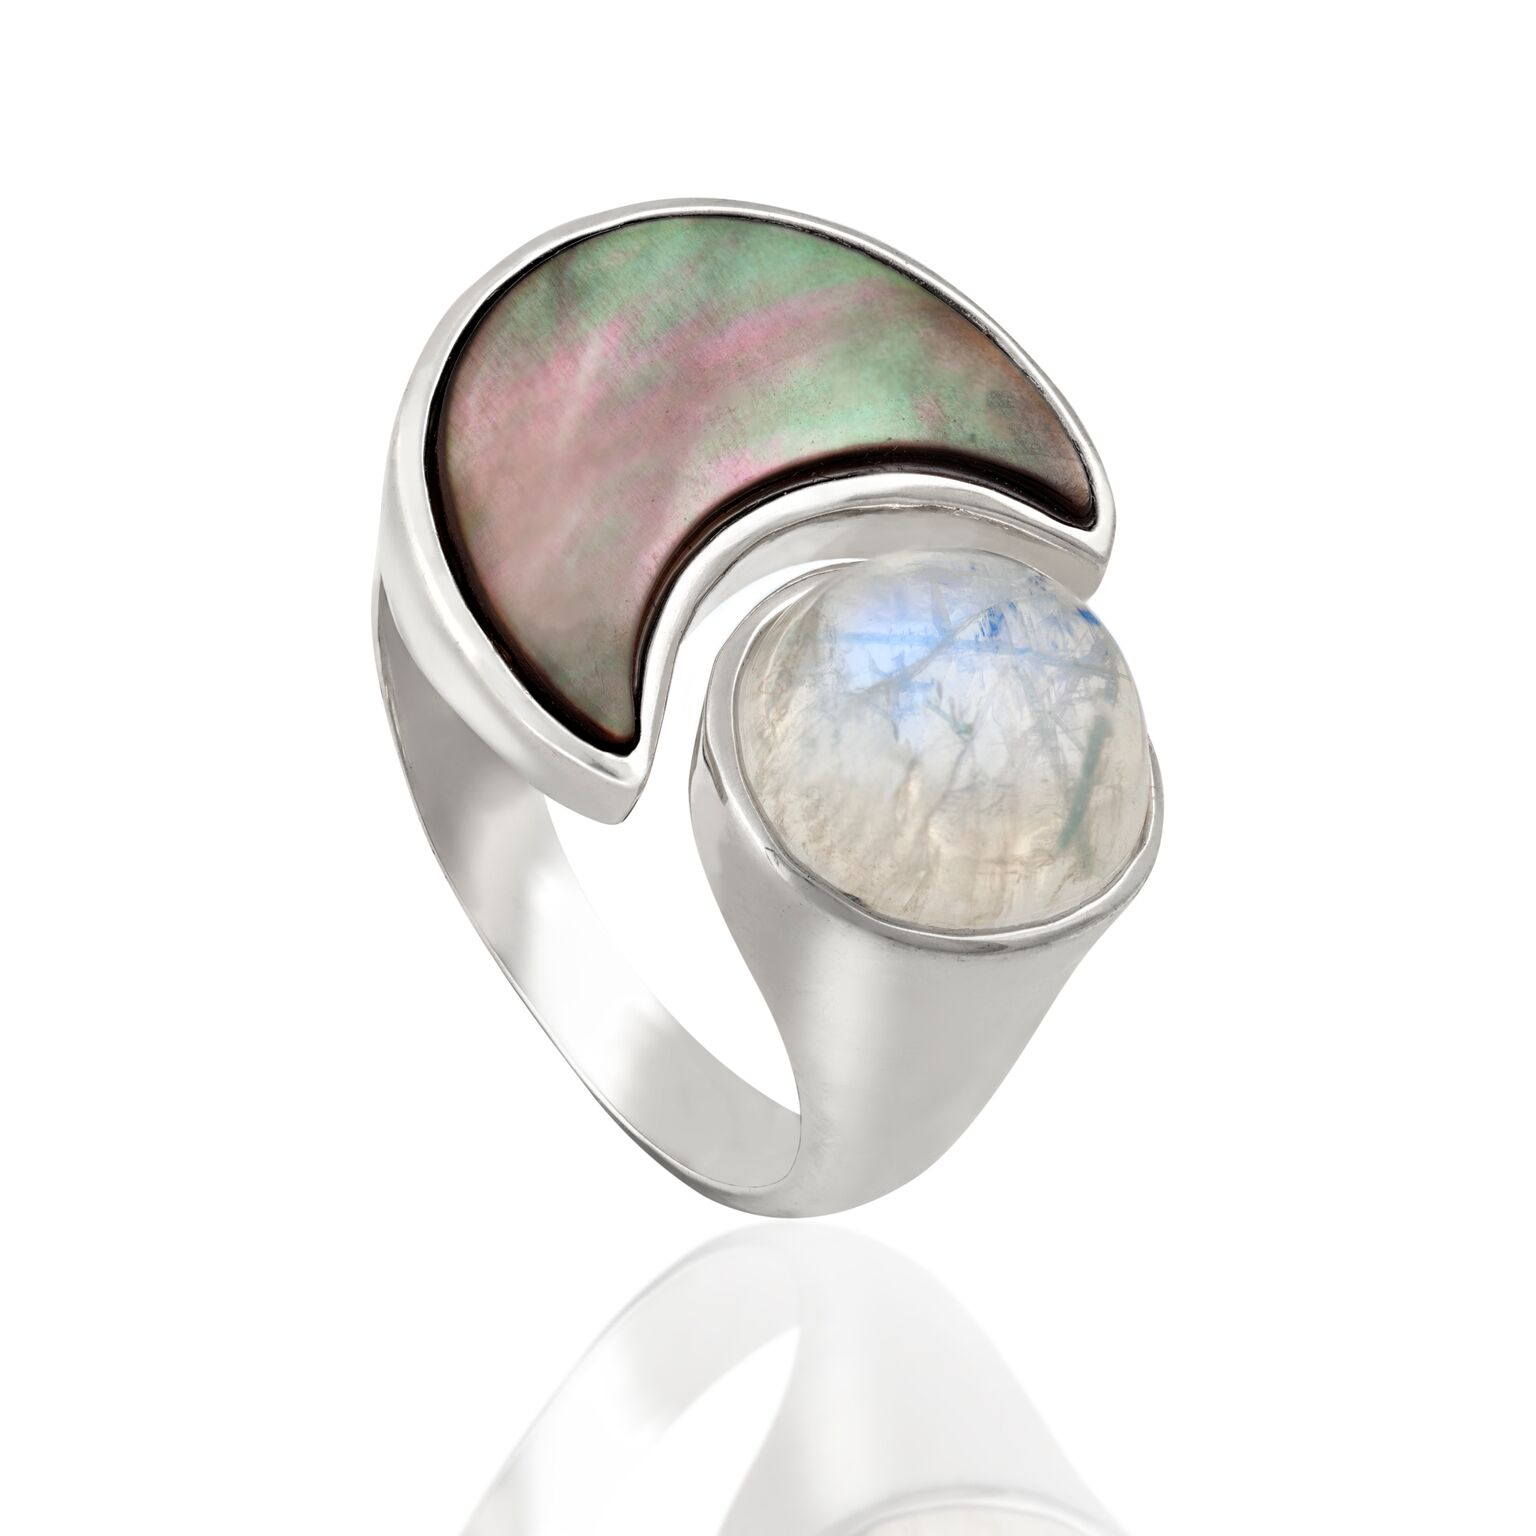 Mother of pearl (Japan) and moonstone (Madagascar), set in white gold-plated silver ring